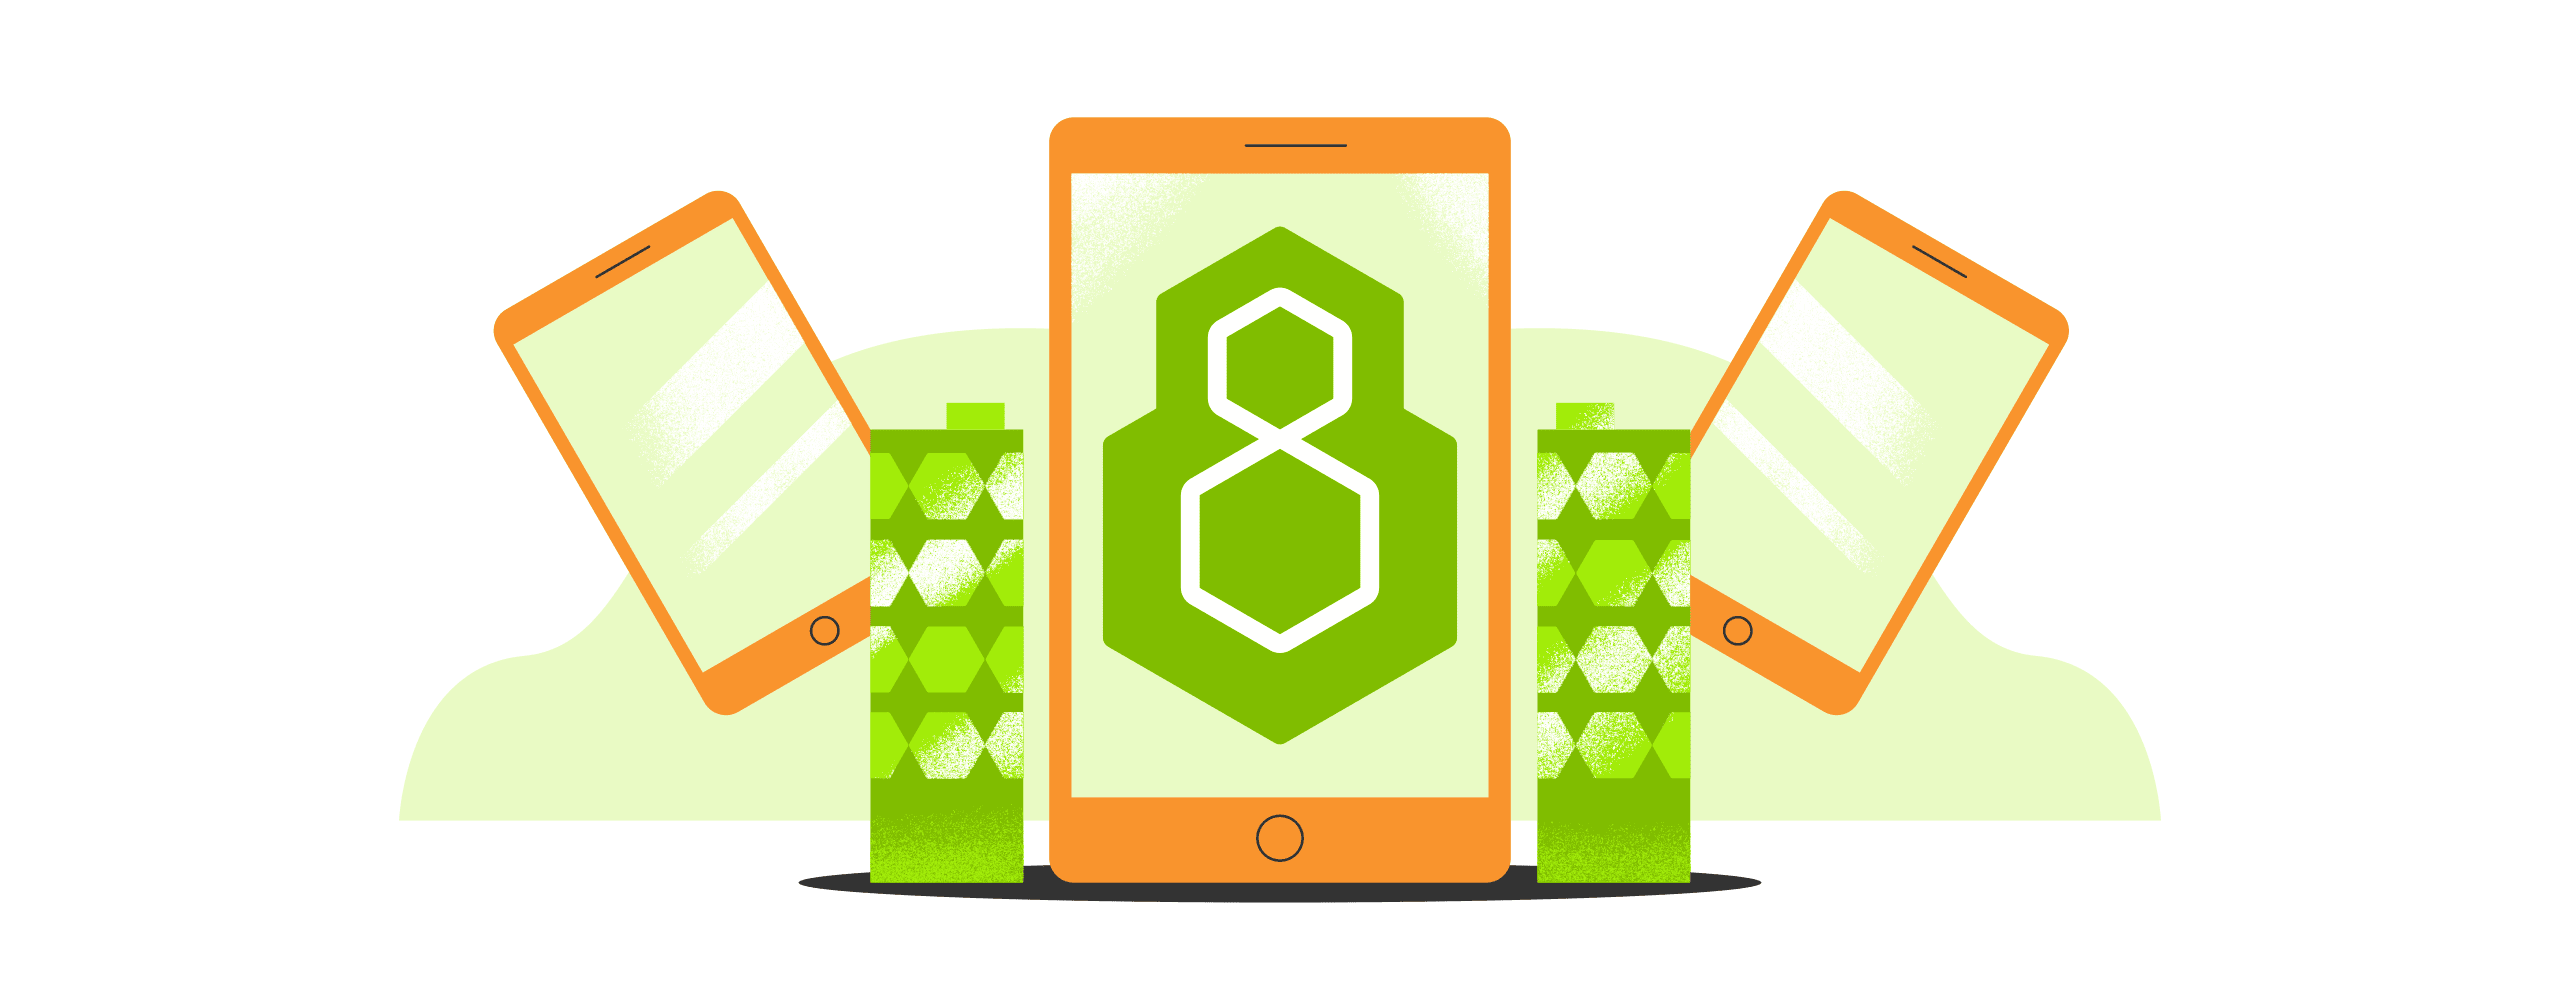 8 Examples of Node.js Development in Enterprise Products